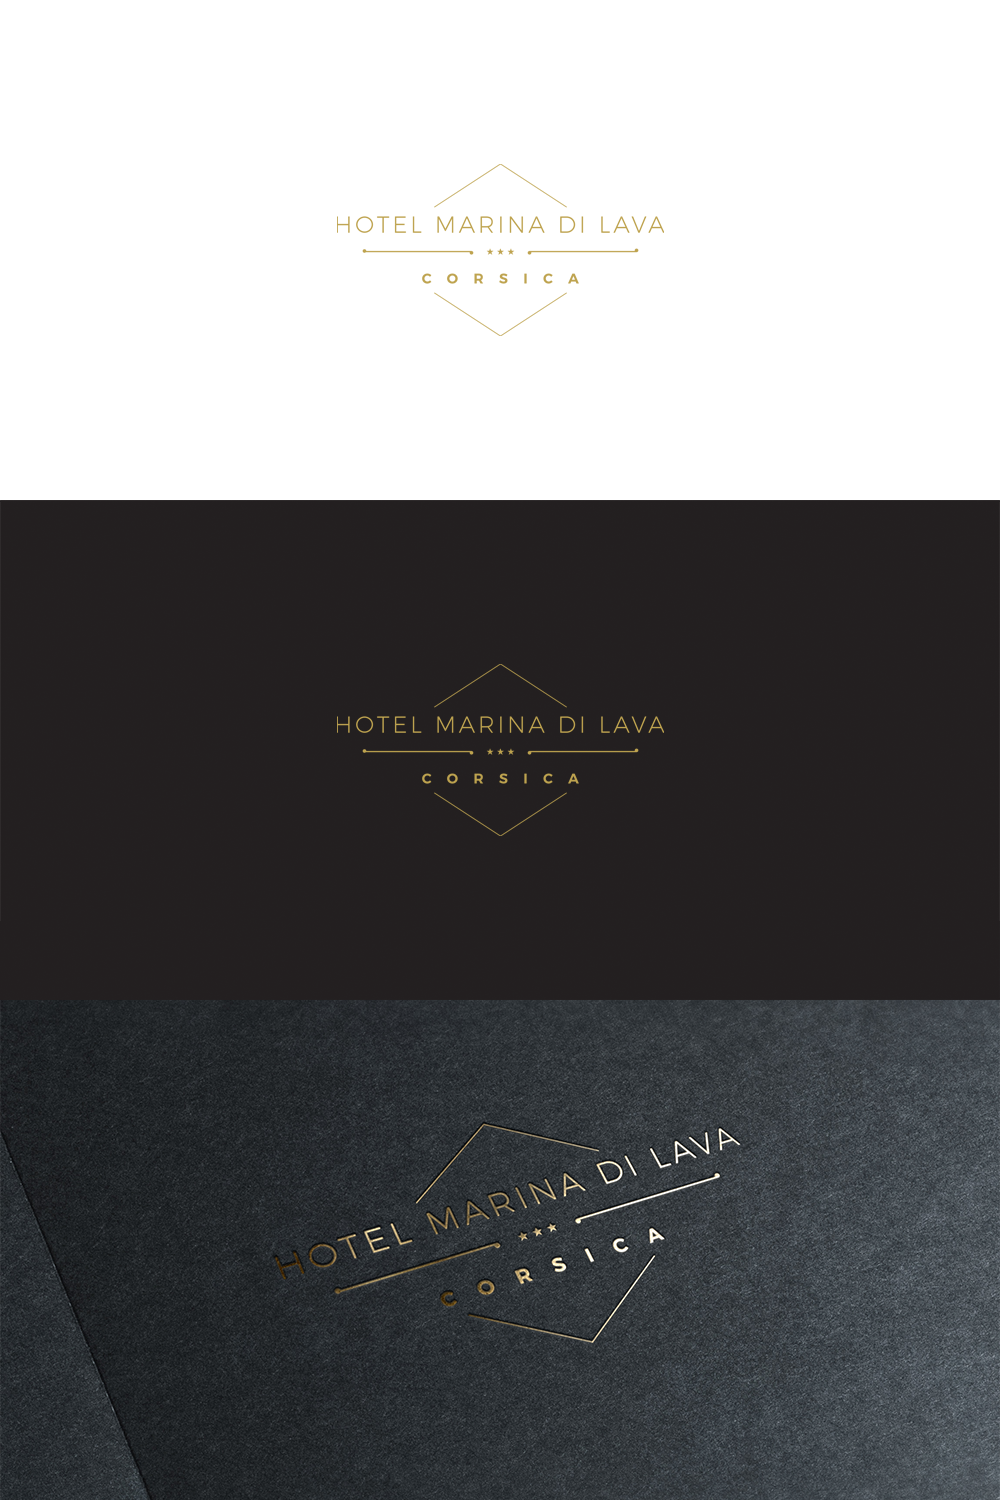 Logo Design By Anhdodes For Marina Di Lava